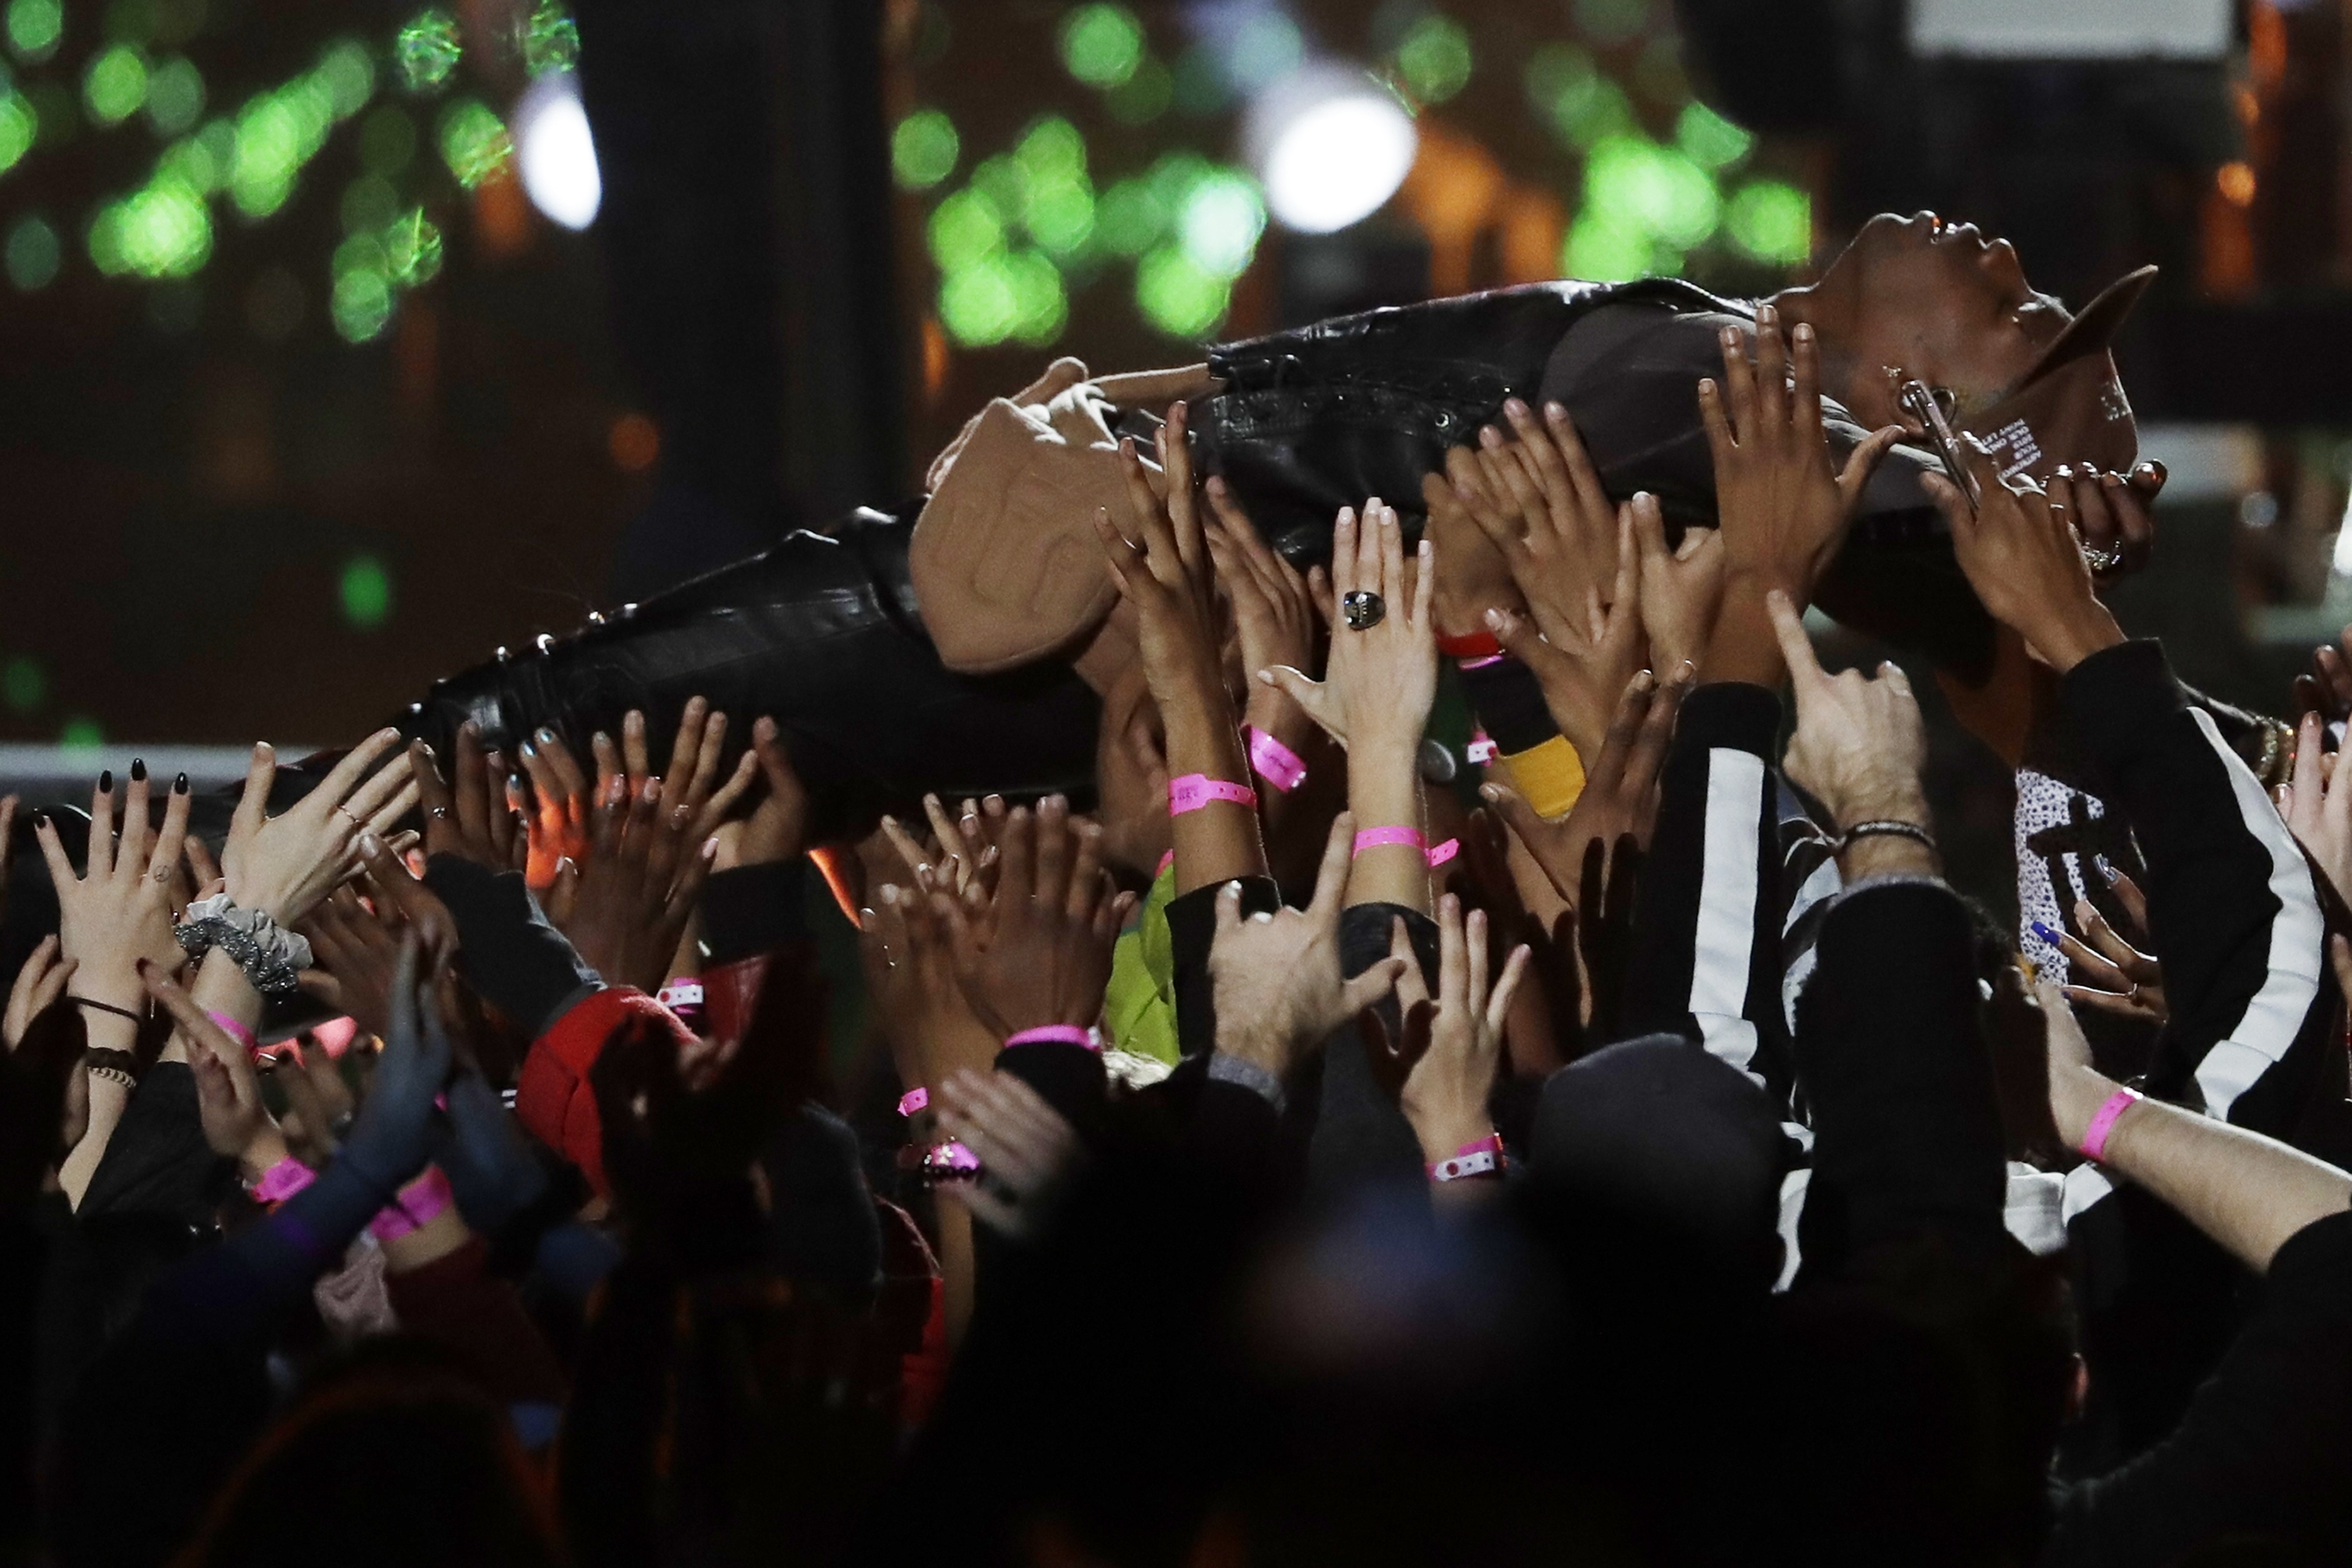 "<div class=""meta image-caption""><div class=""origin-logo origin-image ap""><span>AP</span></div><span class=""caption-text"">Travis Scott is carried by the crowd during the halftime show of the NFL Super Bowl 53 football game between the Los Angeles Rams and the New England Patriots. (AP Photo/Jeff Roberson)</span></div>"